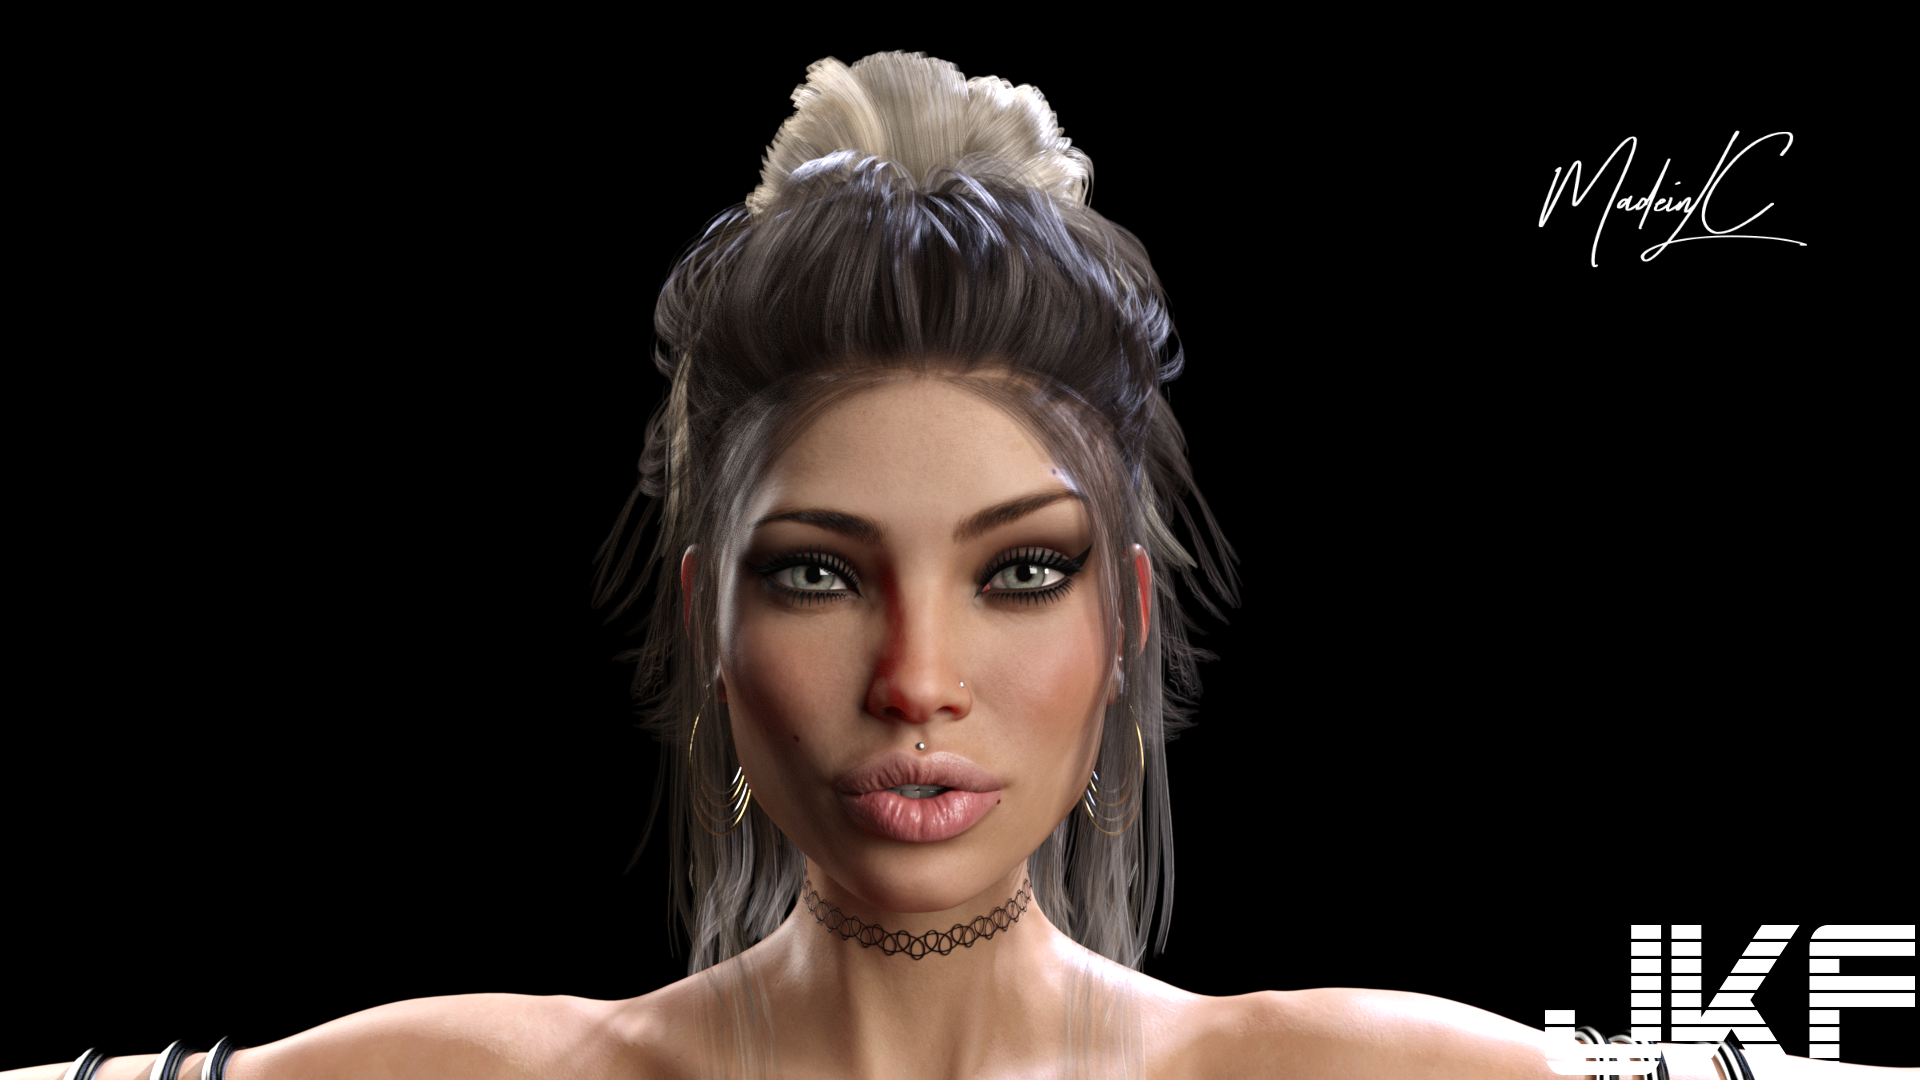 zahia_2_2___face_view_by_madeinlc_dc29ce2.png